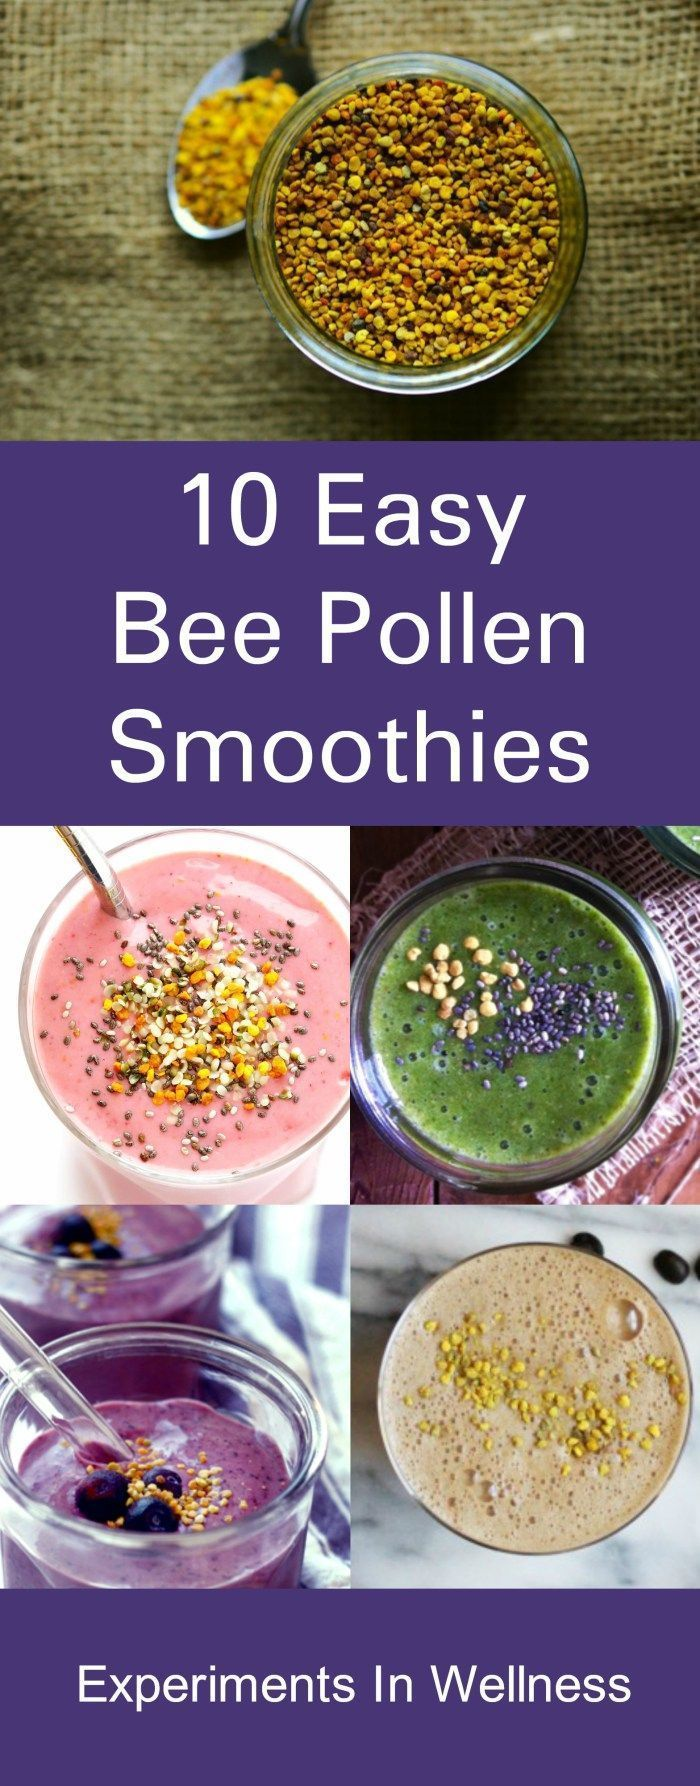 10 Surprising Health Benefits Of Bee Pollen Experiments In Wellness Bee Pollen Smoothie Bee Pollen Juicing Recipes